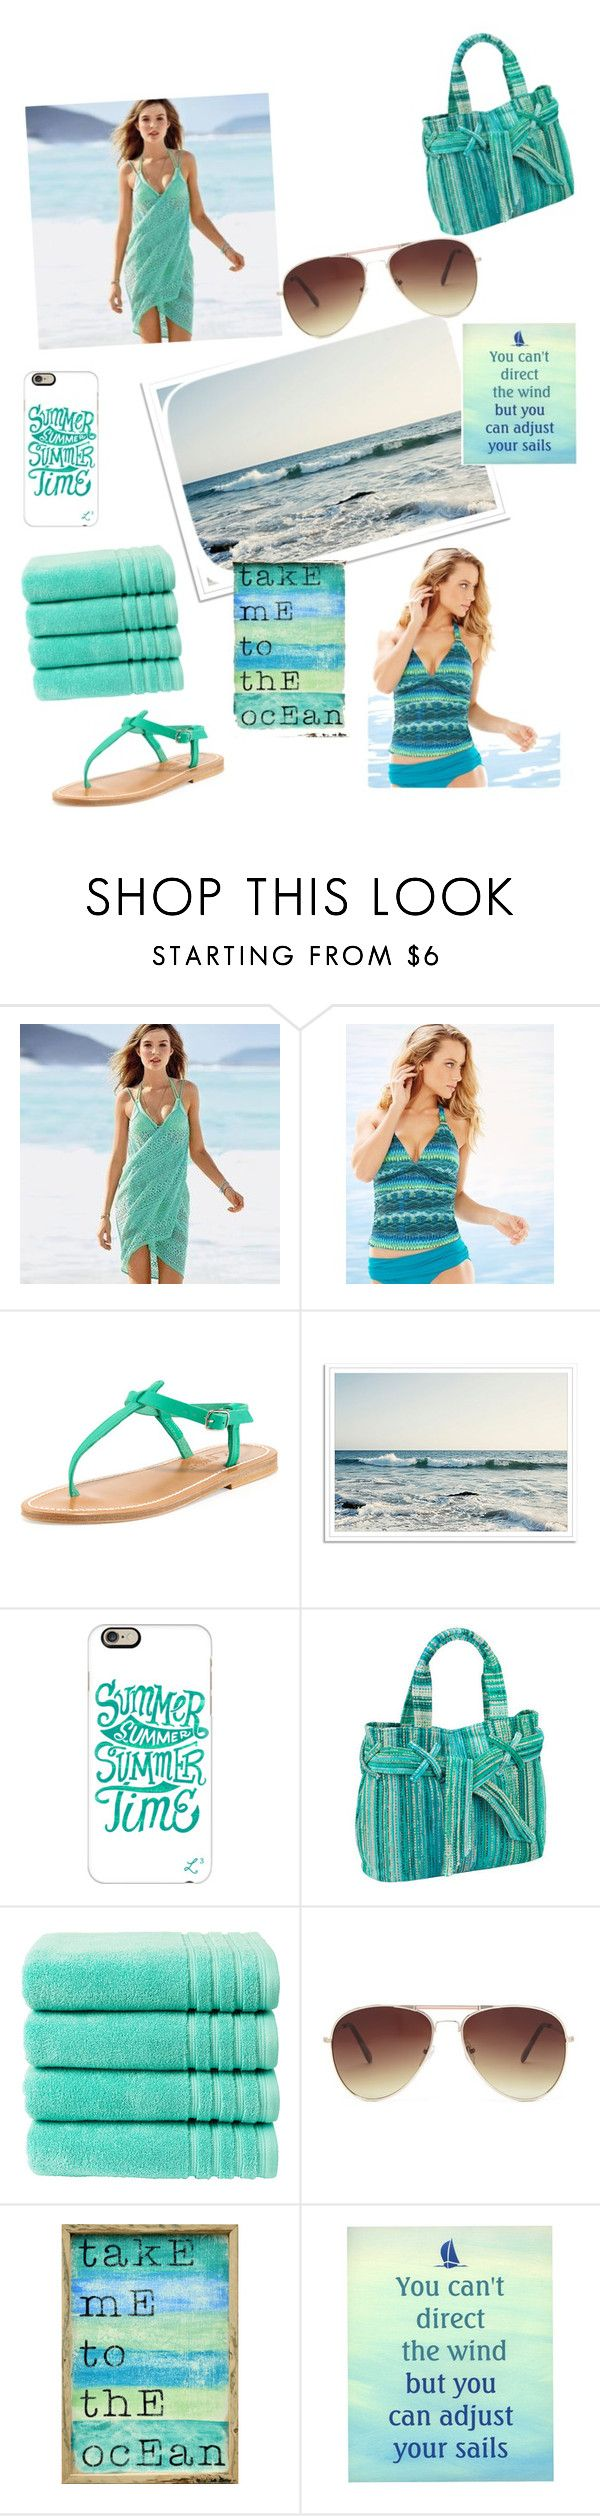 """""""Beach outfit, read the d!"""" by luv-panda ❤ liked on Polyvore featuring Sunset Hours, La Blanca, K. Jacques, Casetify, Elaiva, Christy, Forever 21, Pink Marmalade, women's clothing and women's fashion"""